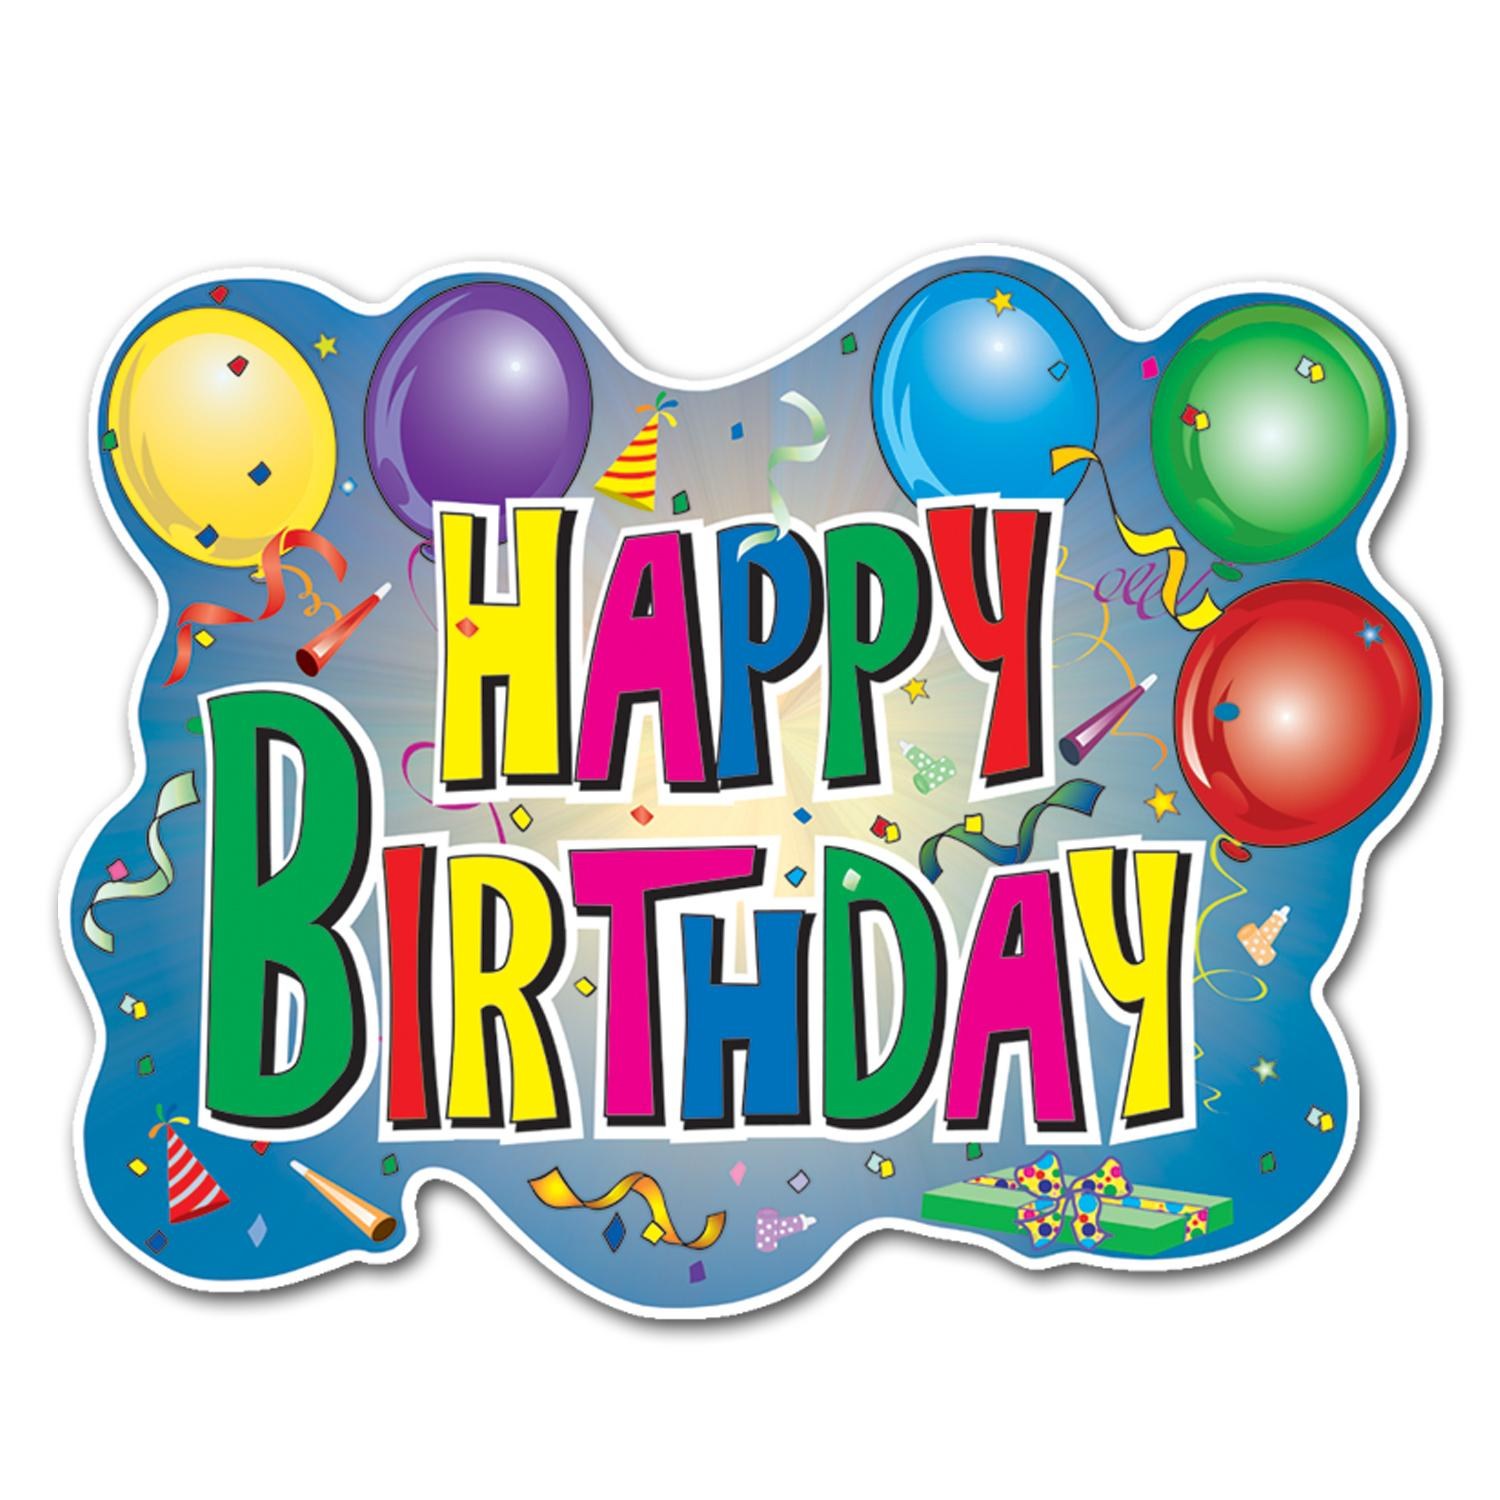 6 Images of Printable Birthday Party Sign